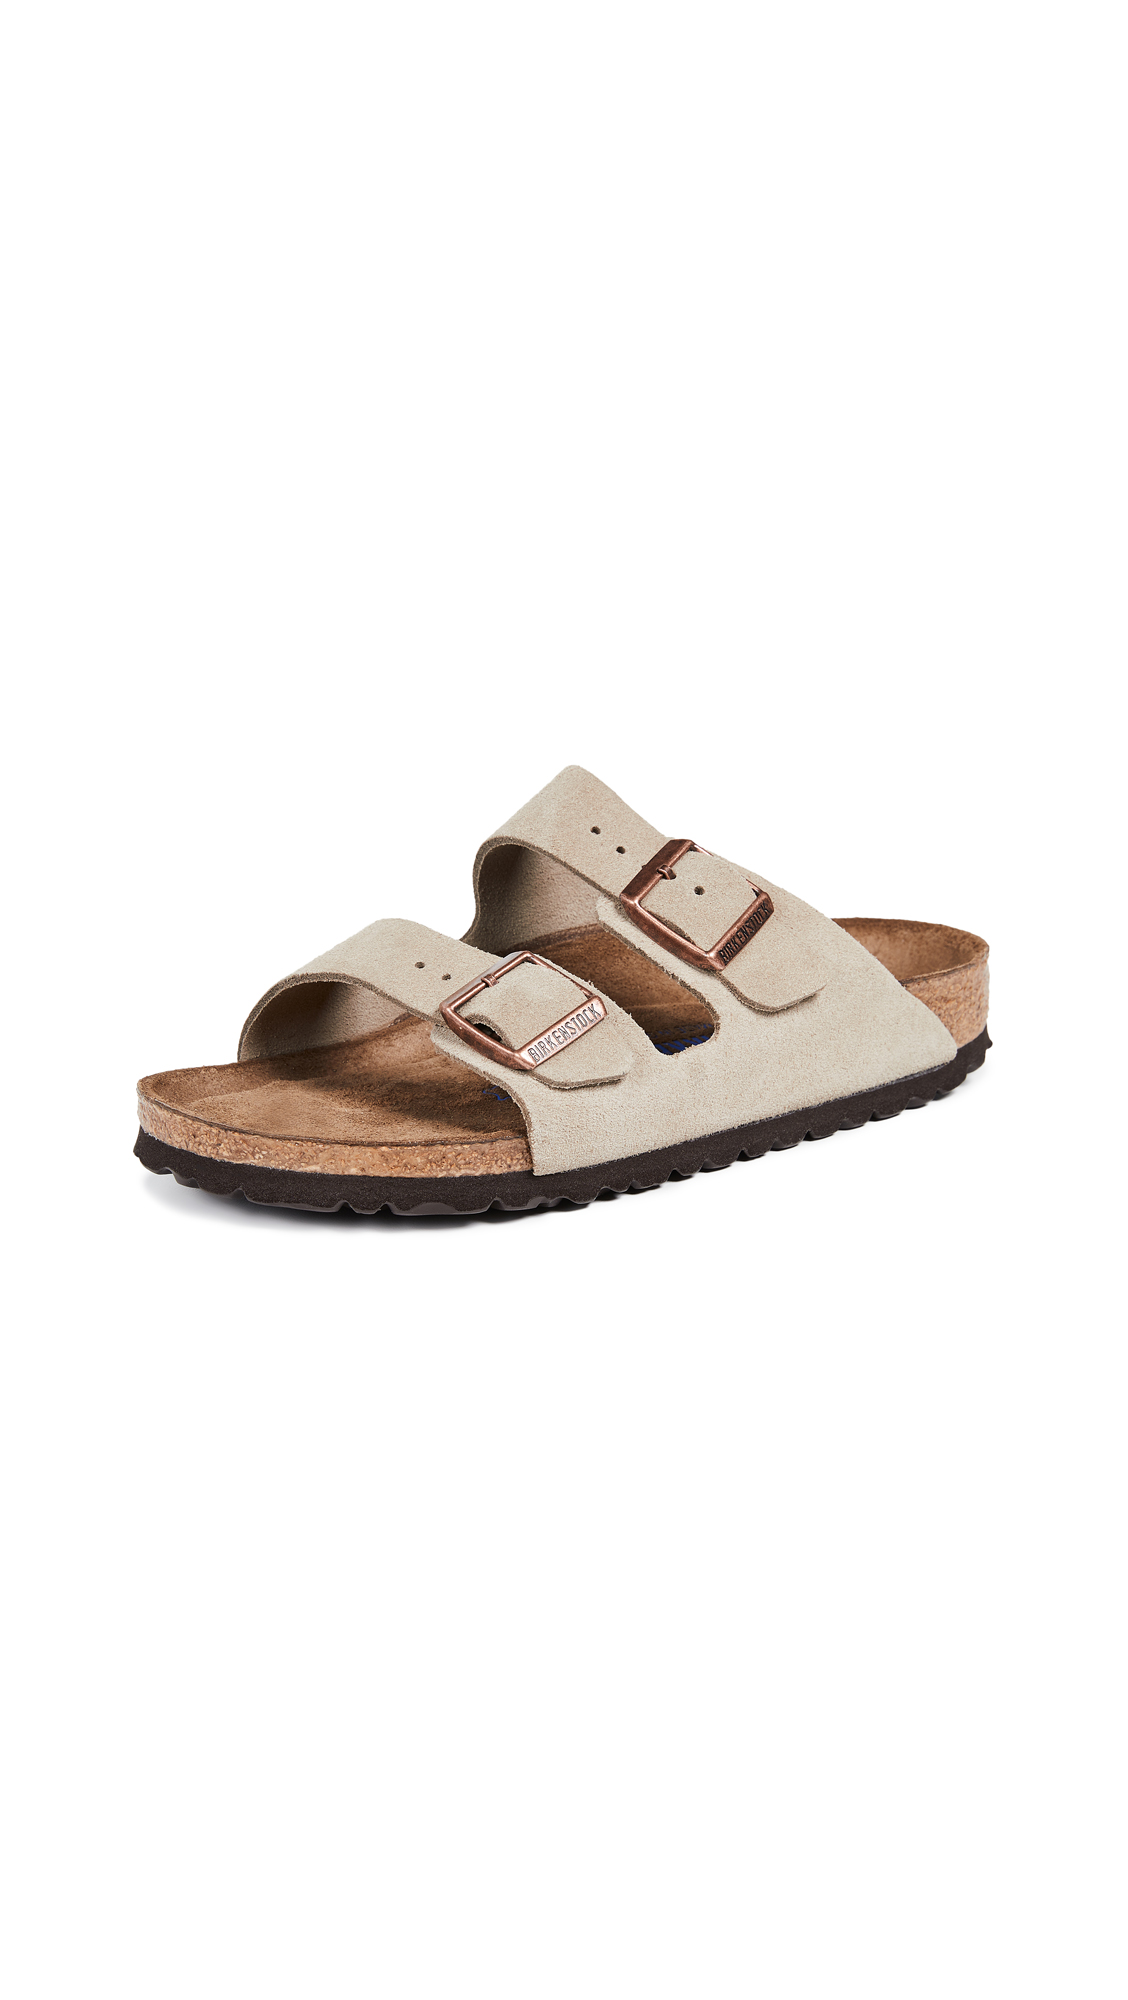 Birkenstock Arizona SFB Sandals